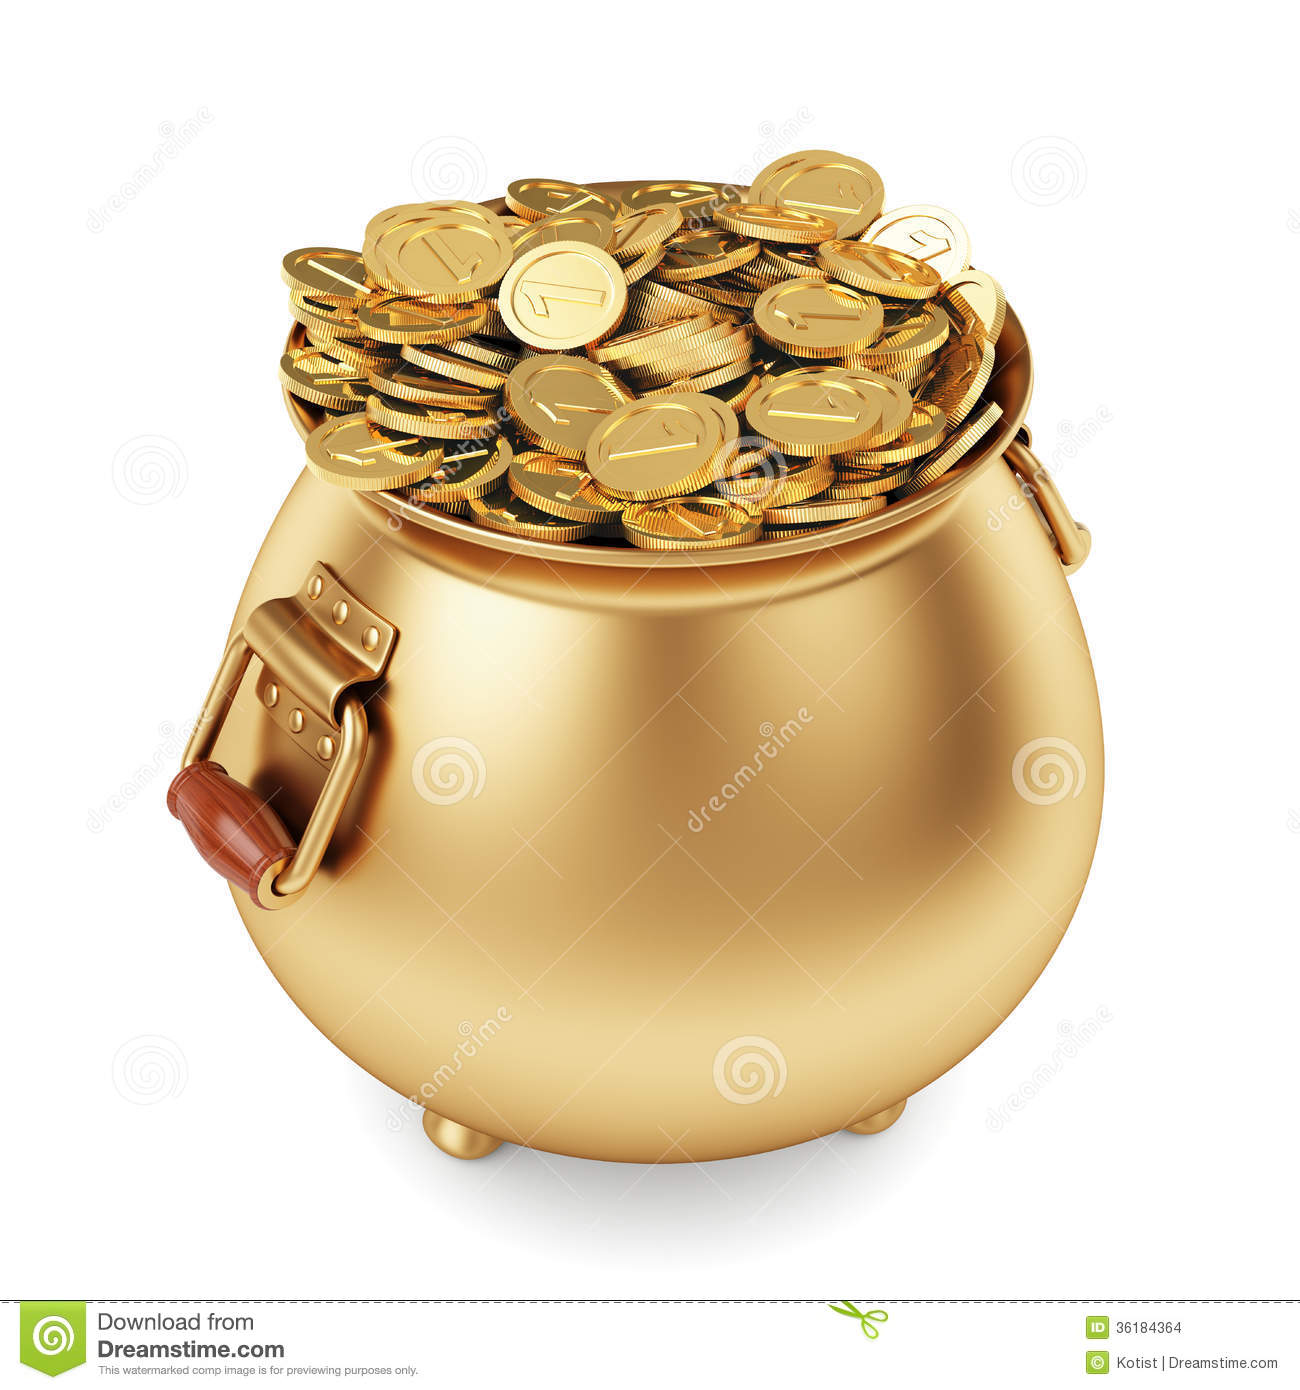 Pot of gold coins stock illustration Illustration of